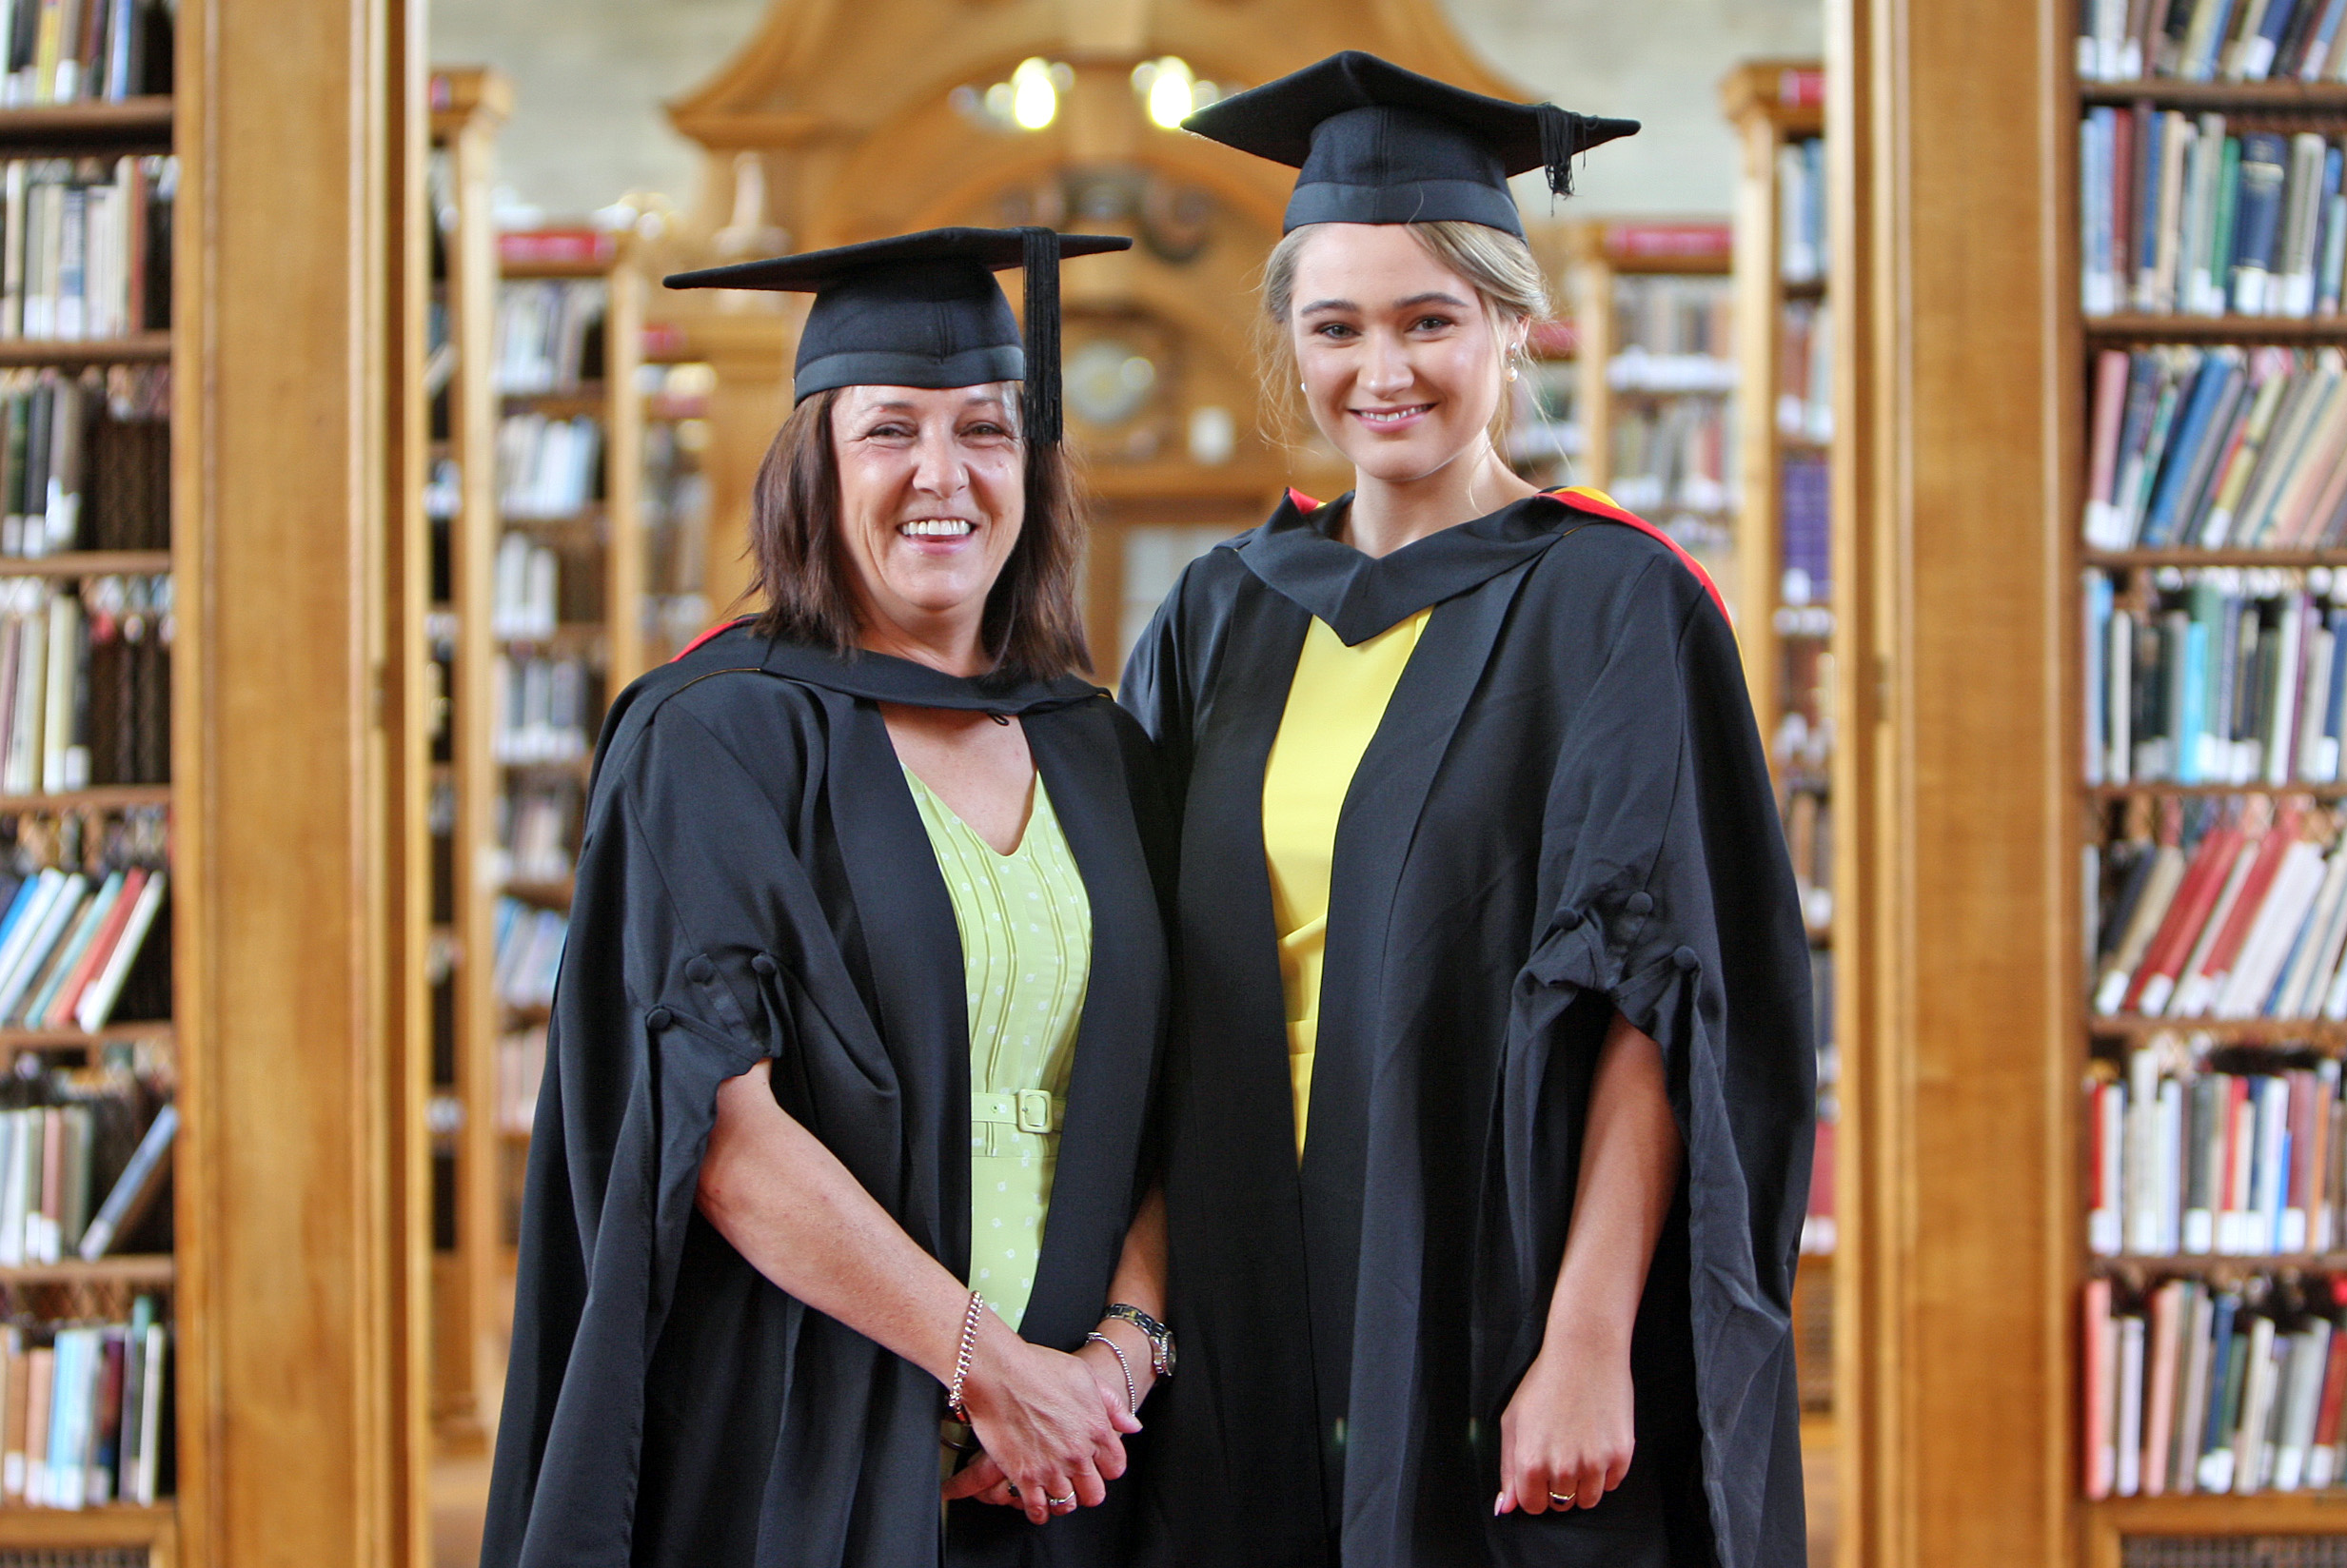 Graduation Gallery | Graduation | Bangor University